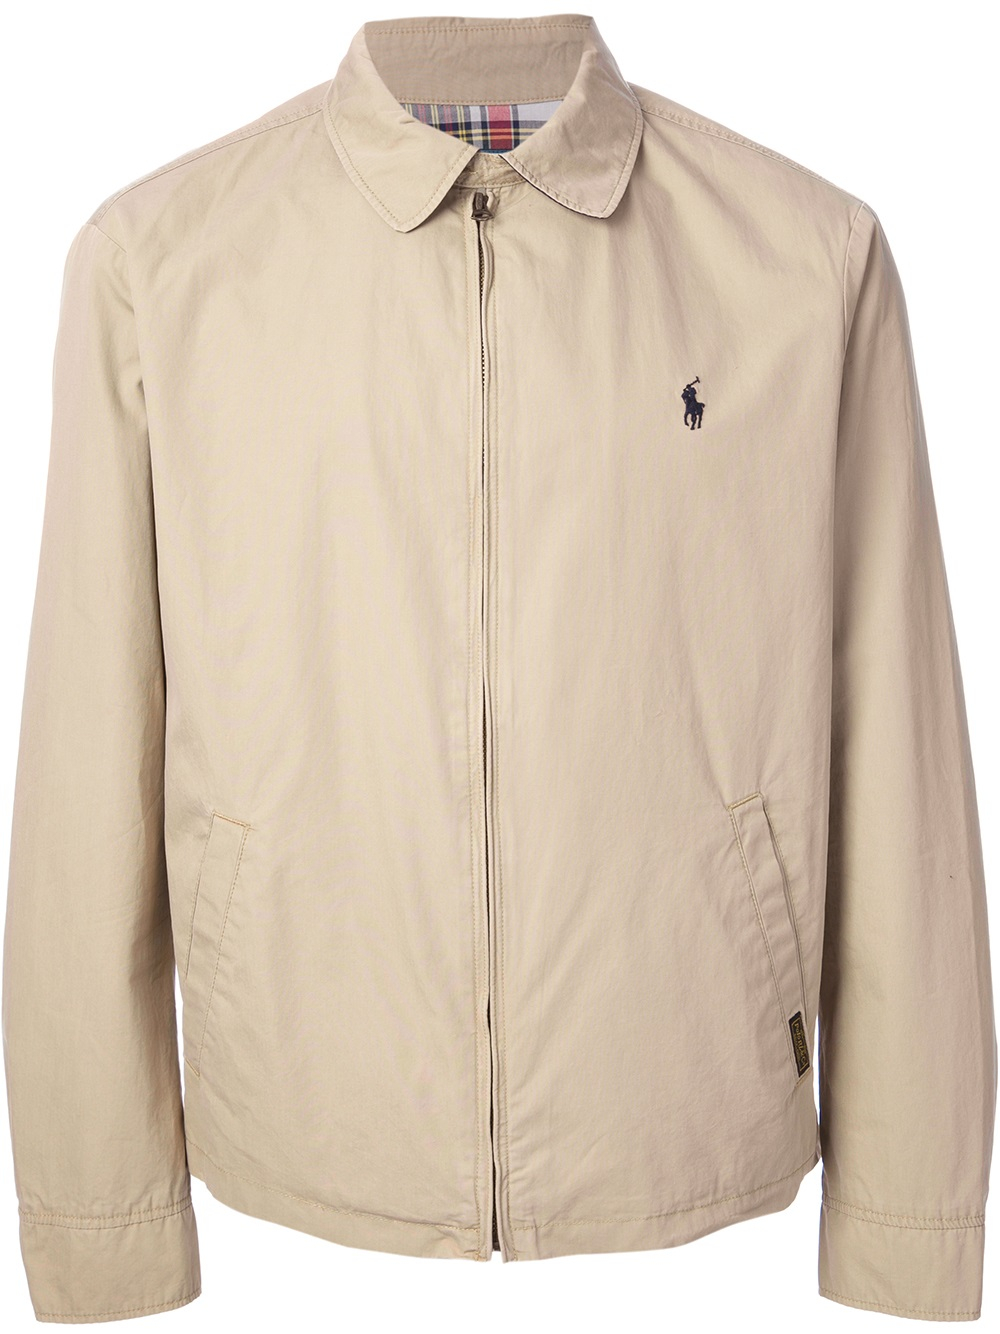 The U.S. Polo Assn. jacket collection on Myntra comprises of dapper jackets in a great variety. There are jackets in a plethora of designs, fabrics, styles, and patterns. You also need not worry about your budget as you get all your favourite U.S. Polo Assn. jackets at the most irresistible prices.